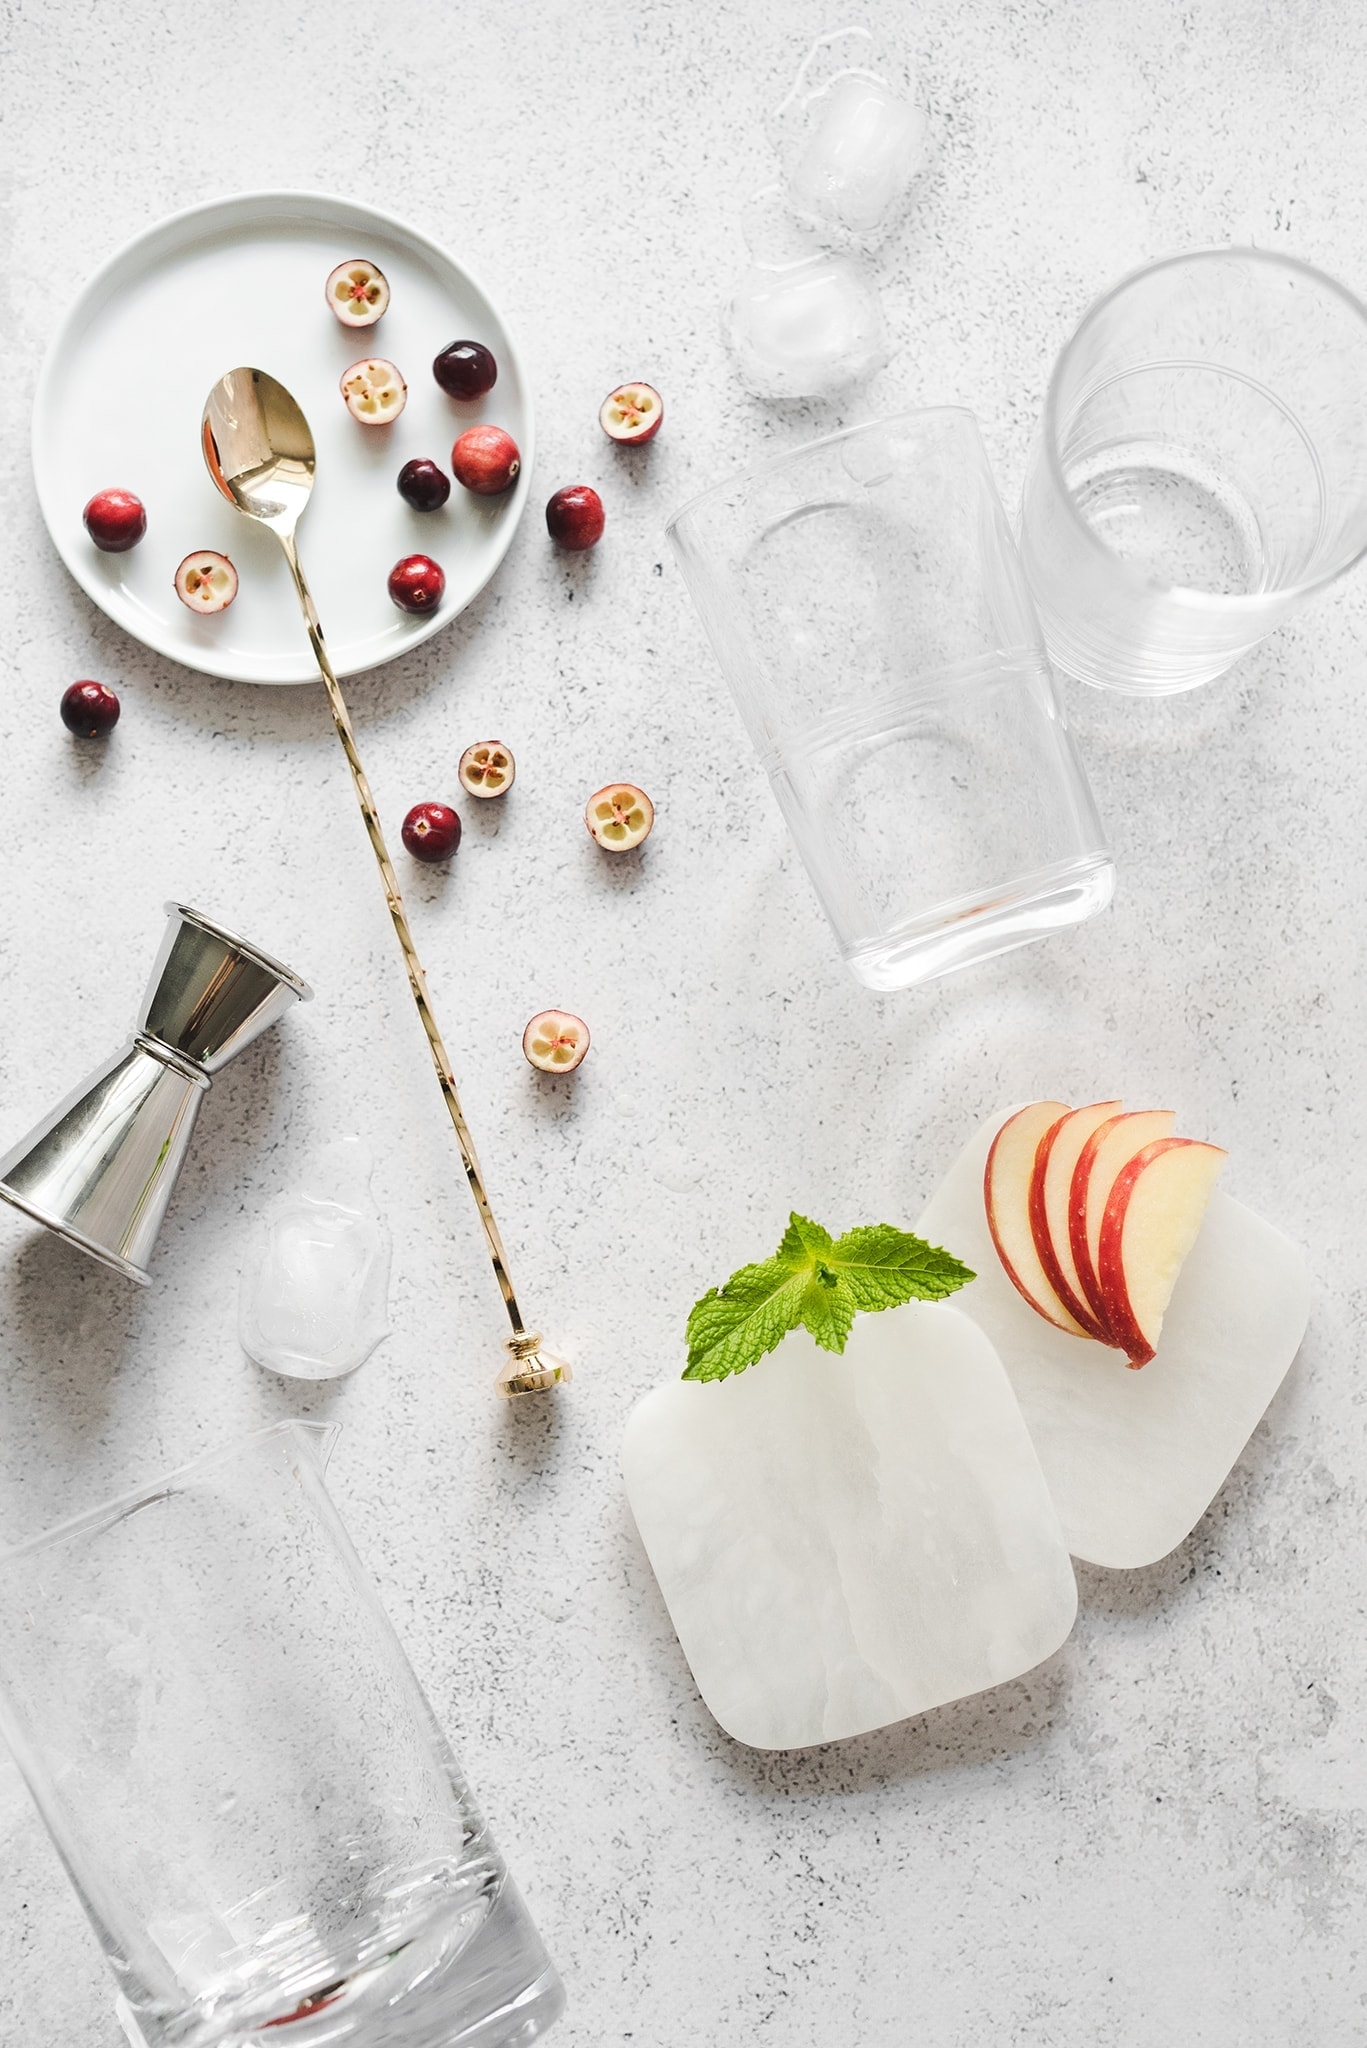 Glasses, coasters, and ingredients for cranberry apple mojitos